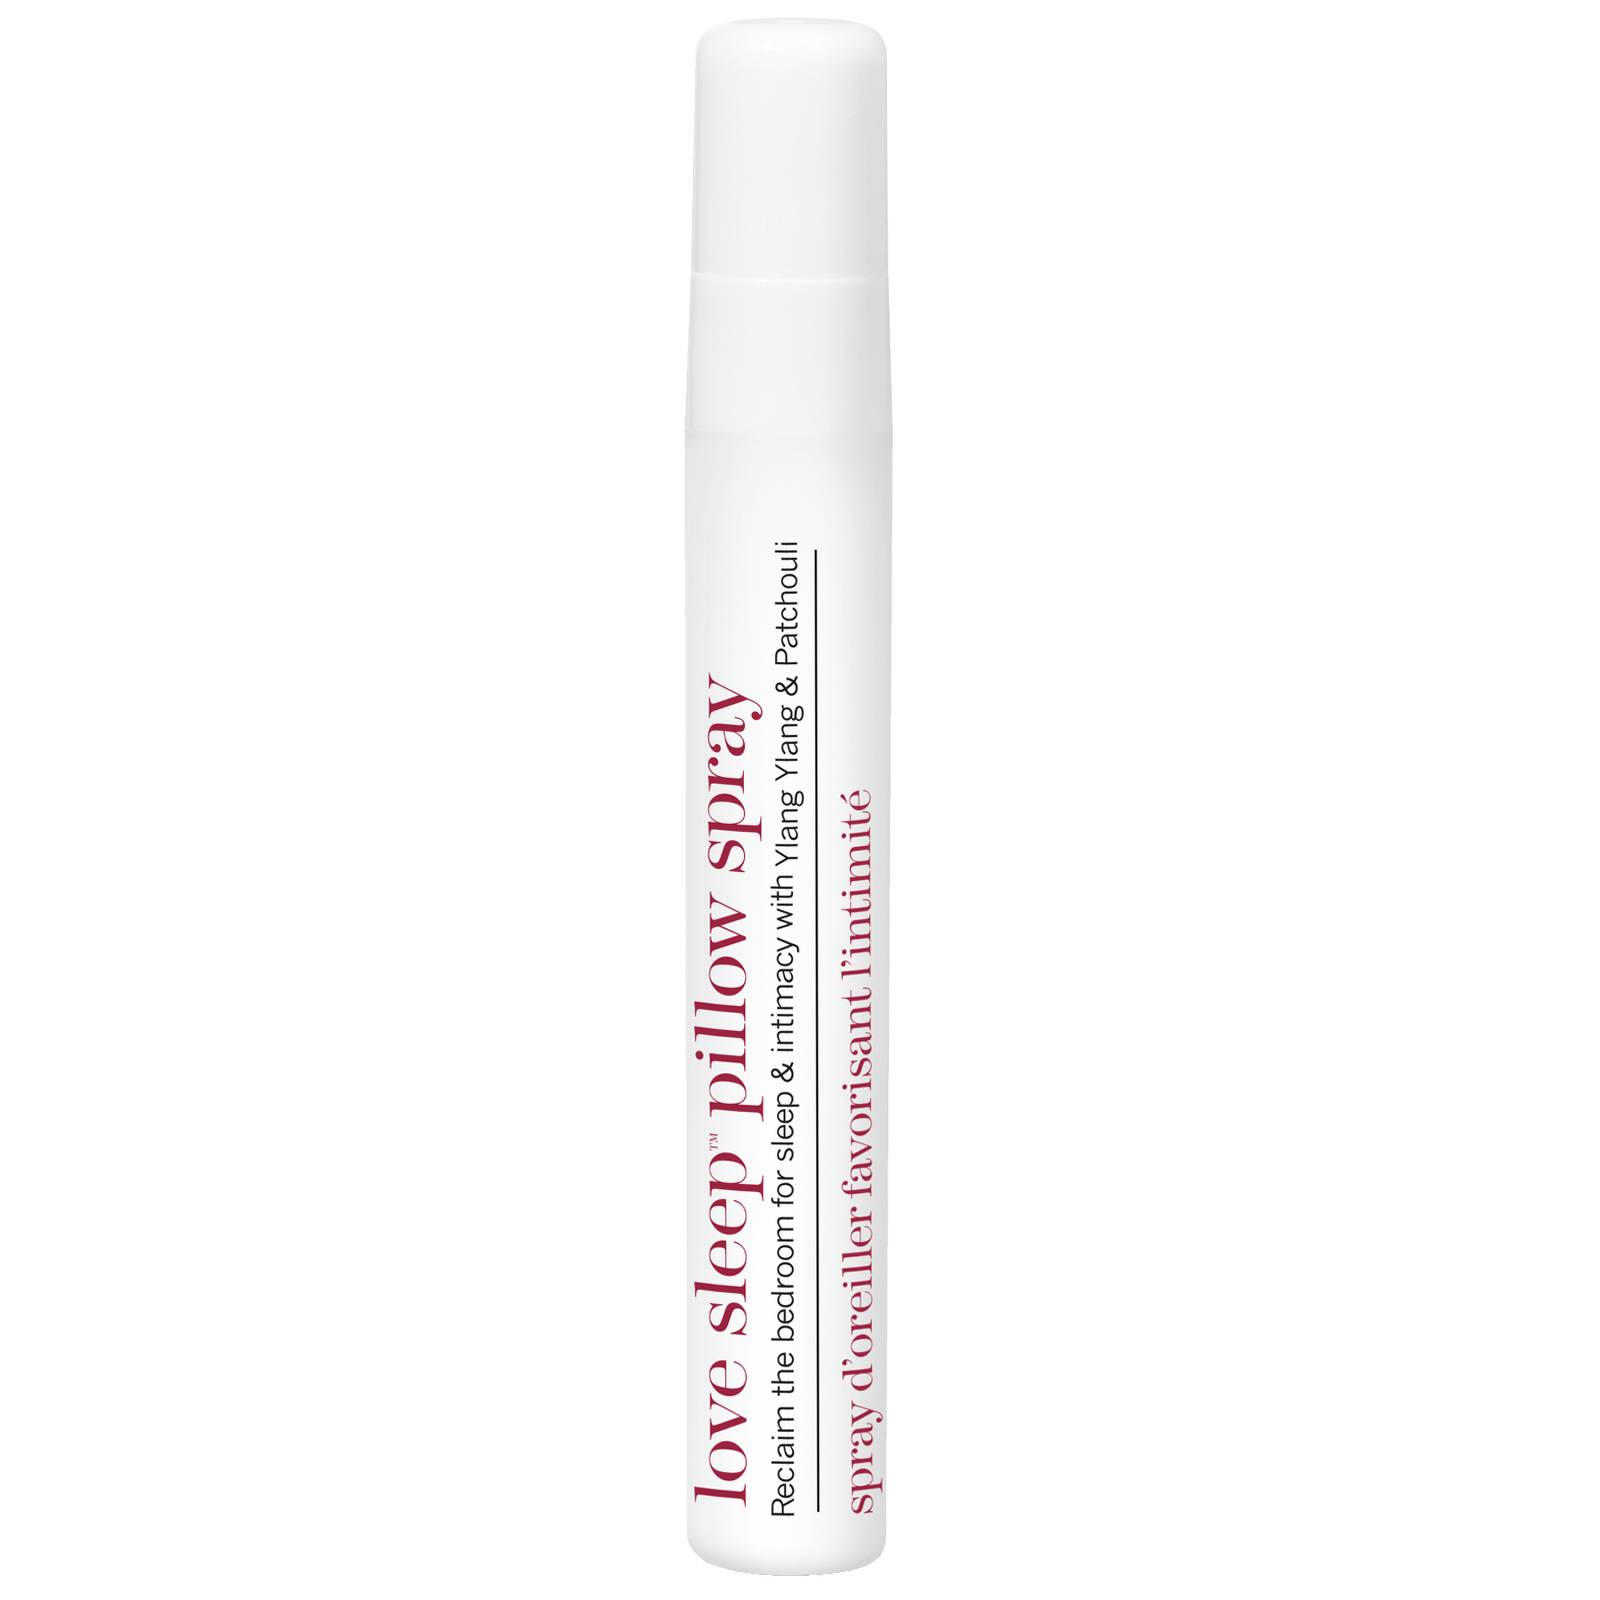 thisworks Sleep Amore Sonno Cuscino Spray 10ml